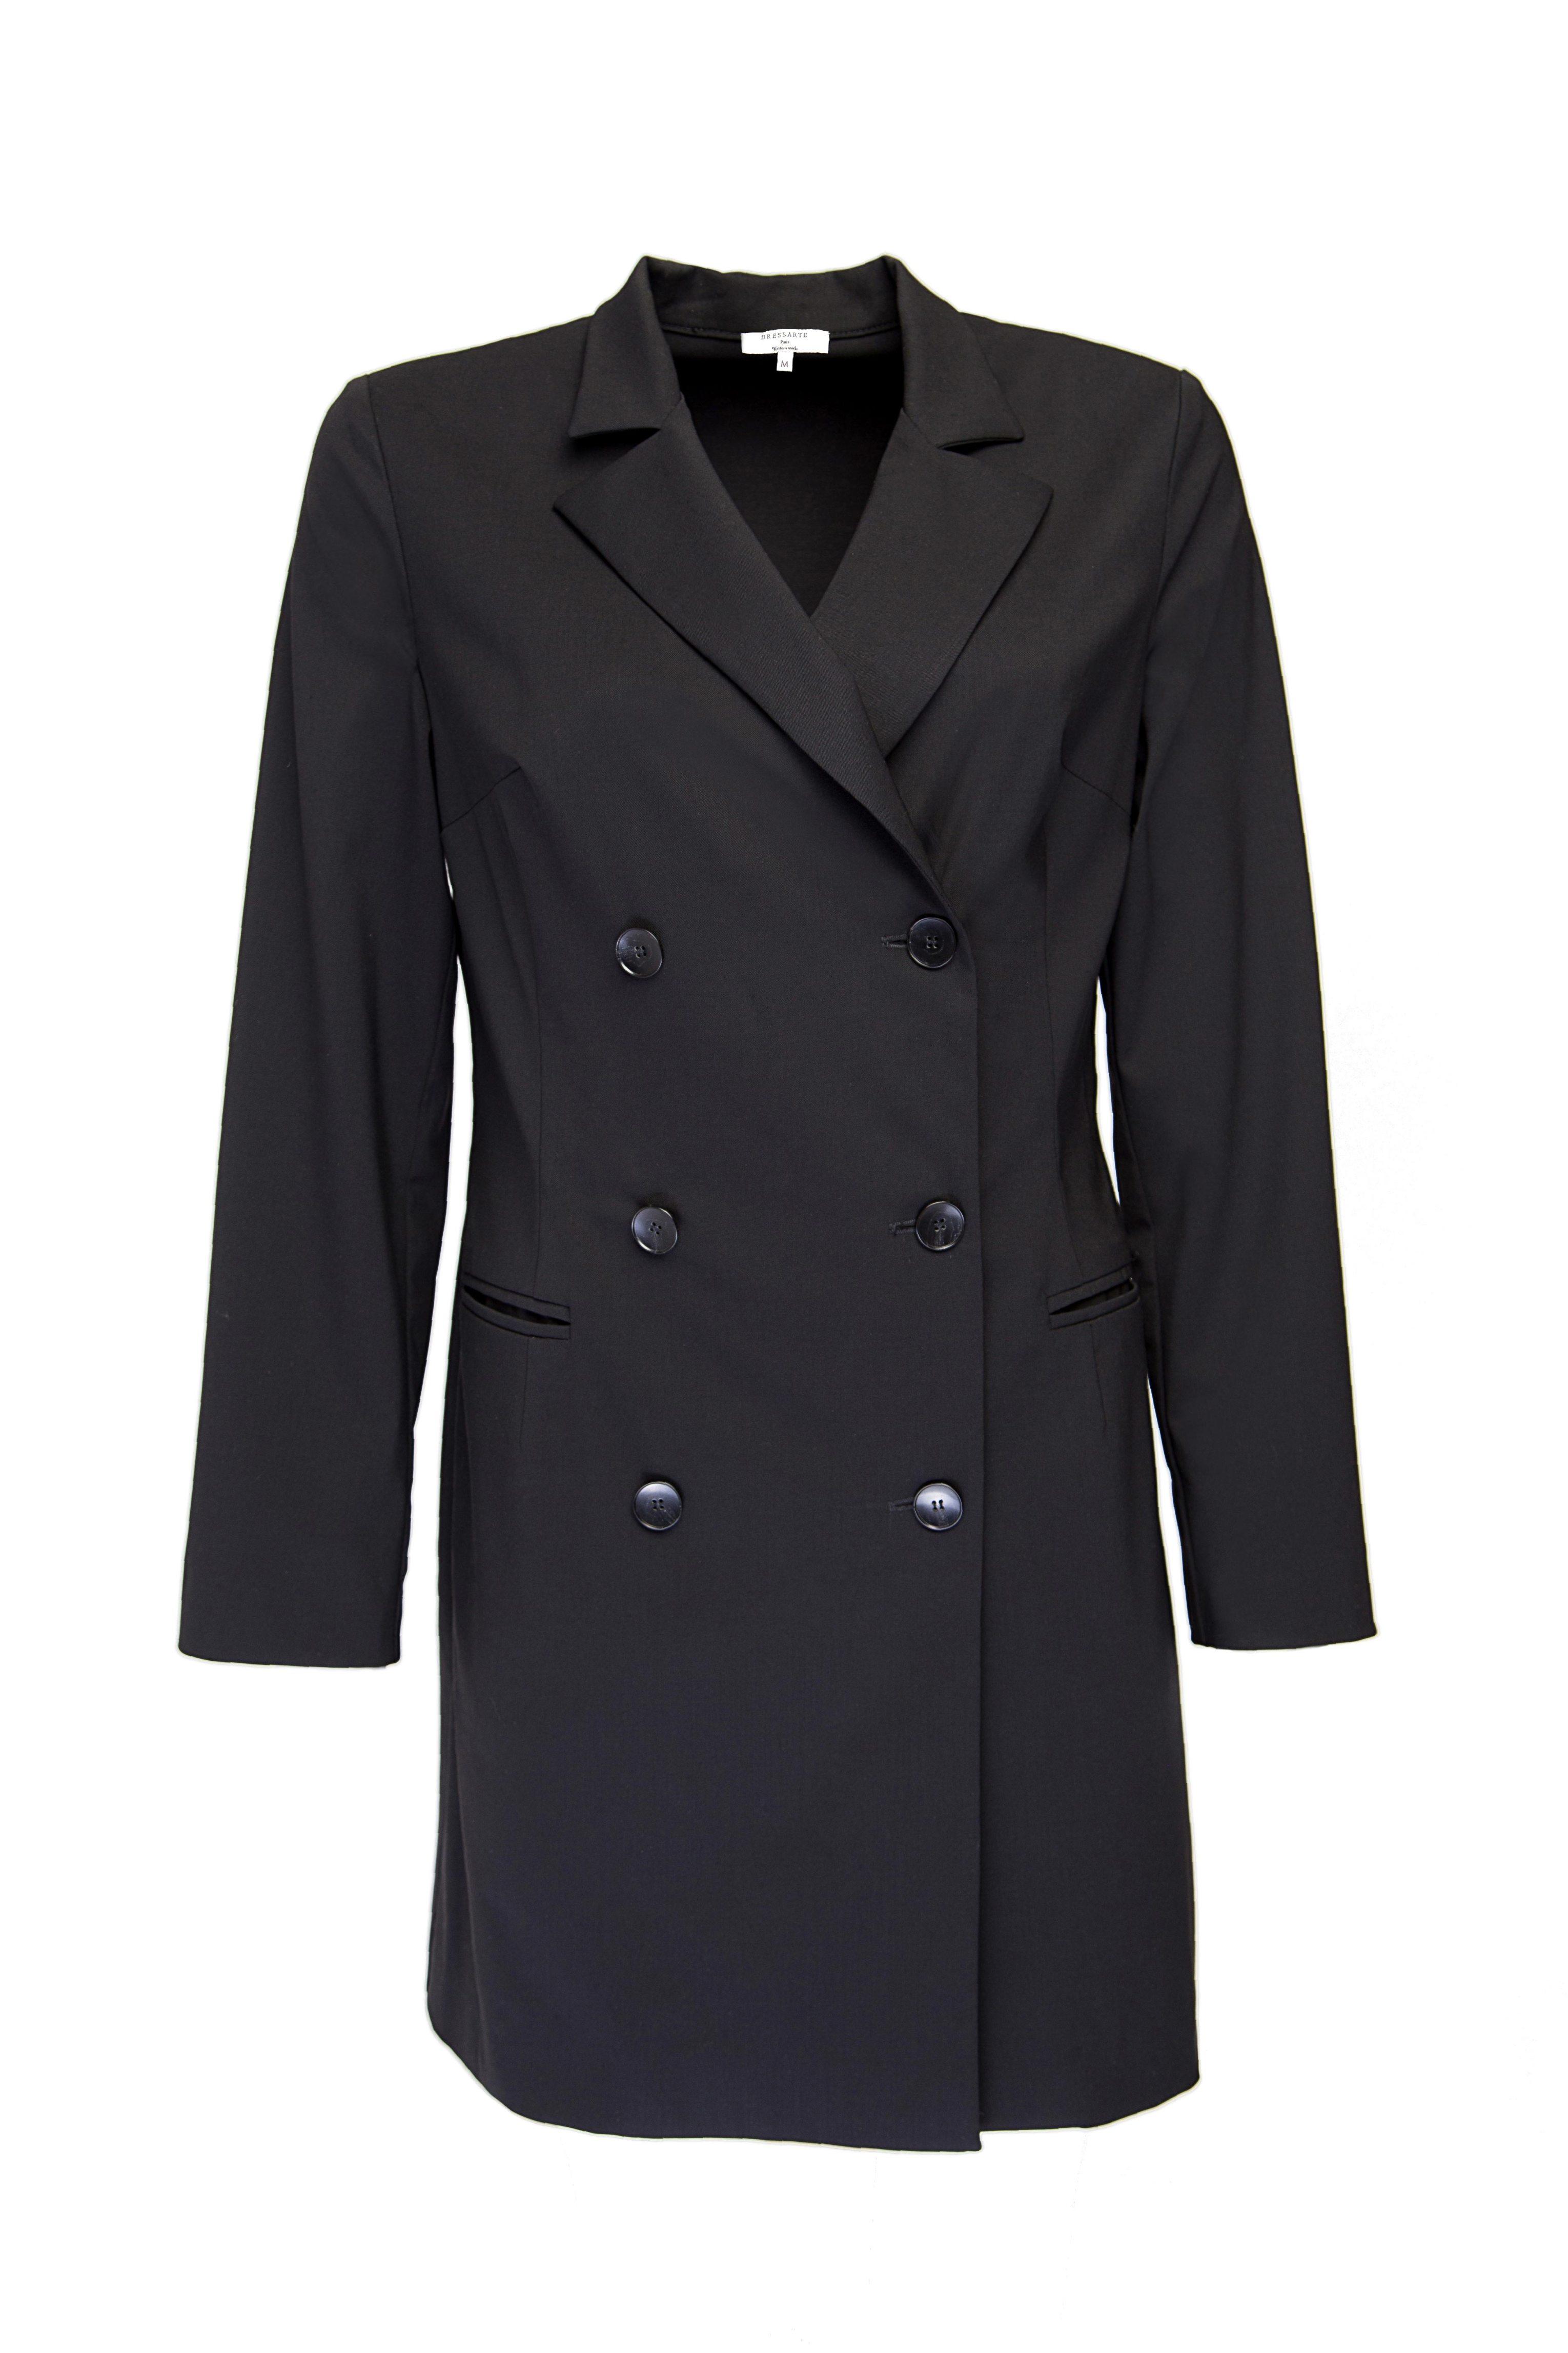 Double-breasted blazer dress from Dressarte Paris